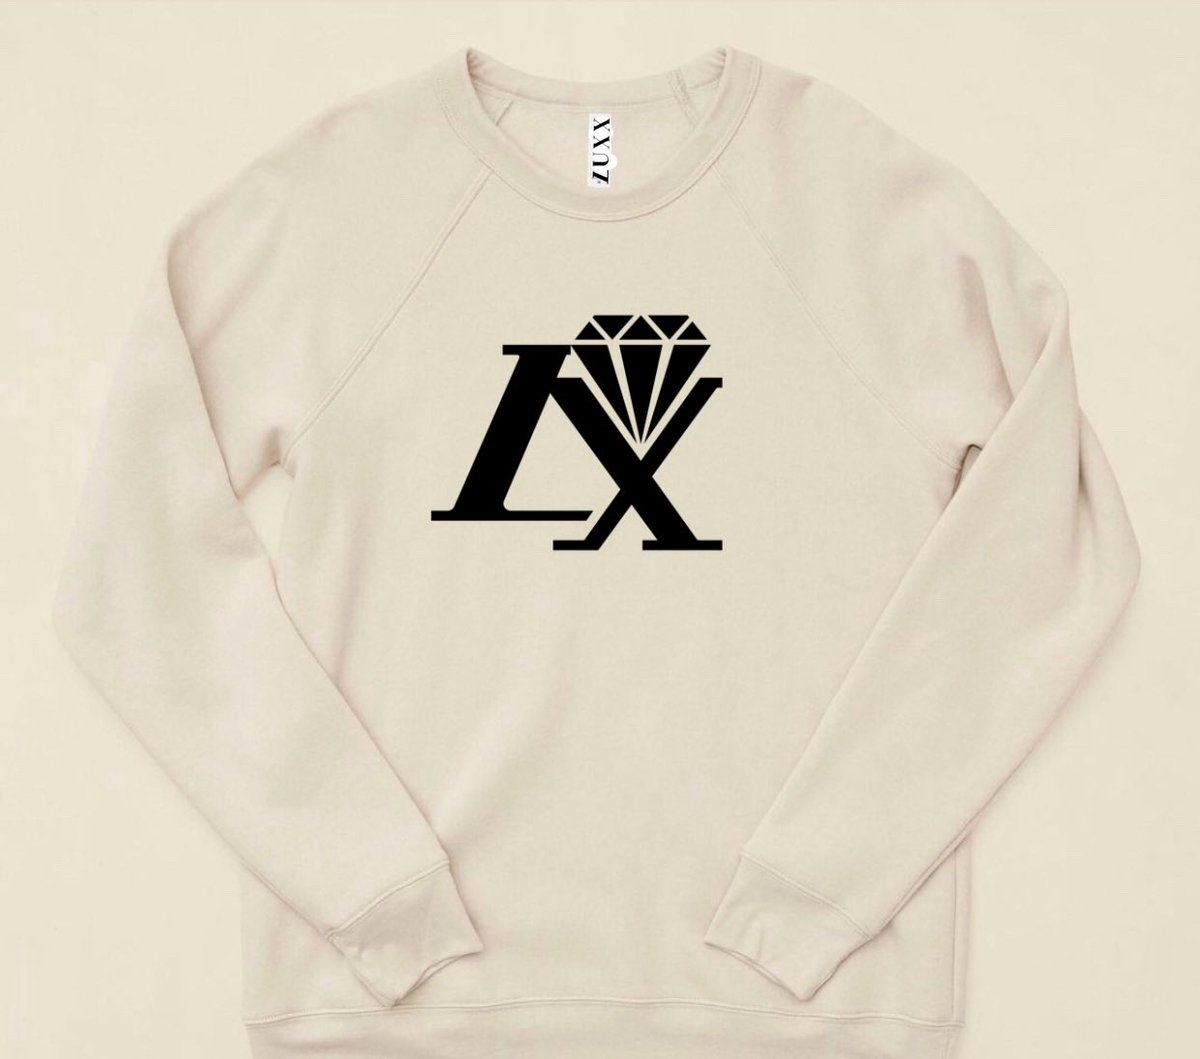 Twitter i own a small clothing  business in, New York by the name of Luxx Outfitters , i sell Luxury Street wear clothing  the website is   RT FOR ME MY Customer could be on your TL 💎im#supportsmallbusiness #BlackOwnedBusinesses